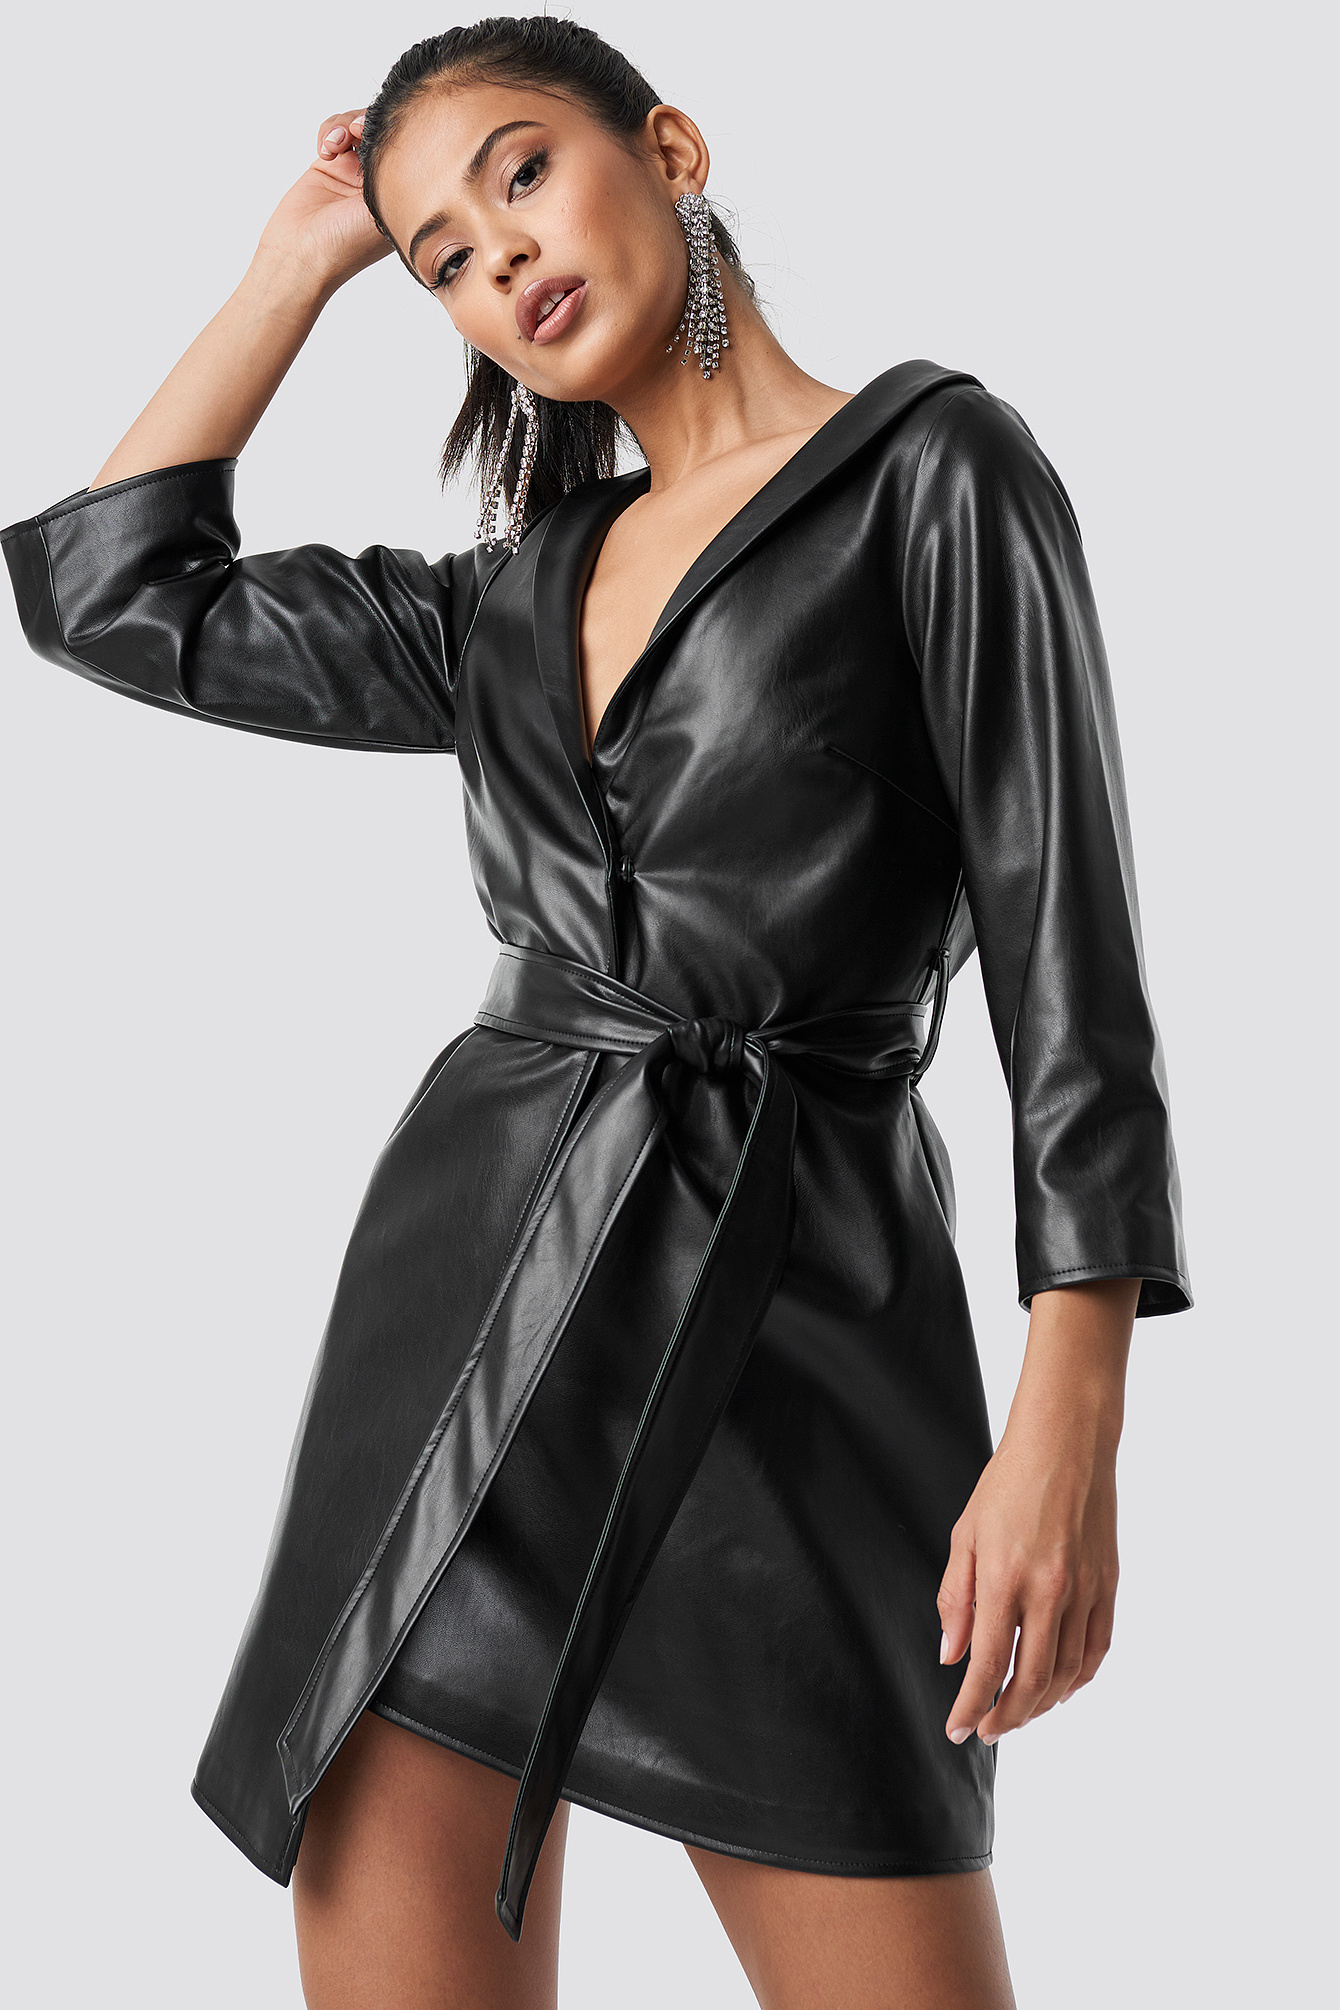 hannalicious x na-kd -  Faux Leather Blazer Dress - Black